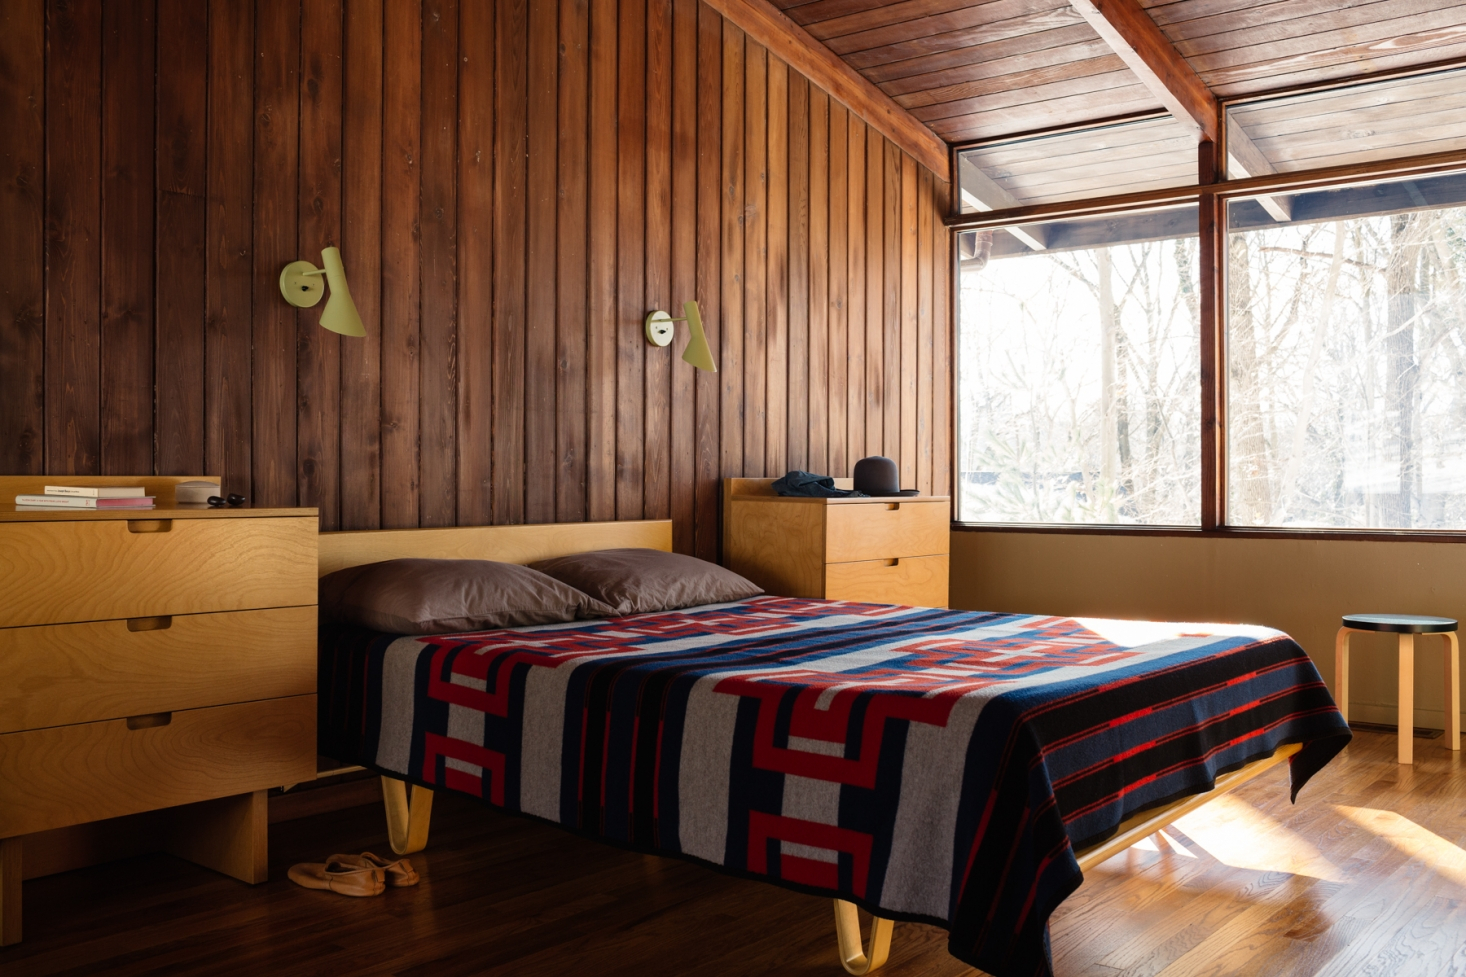 Steal This Look An Authentic Midcentury Modern Bedroom regarding 15 Awesome Ideas How to Make Mid Century Modern Bedroom